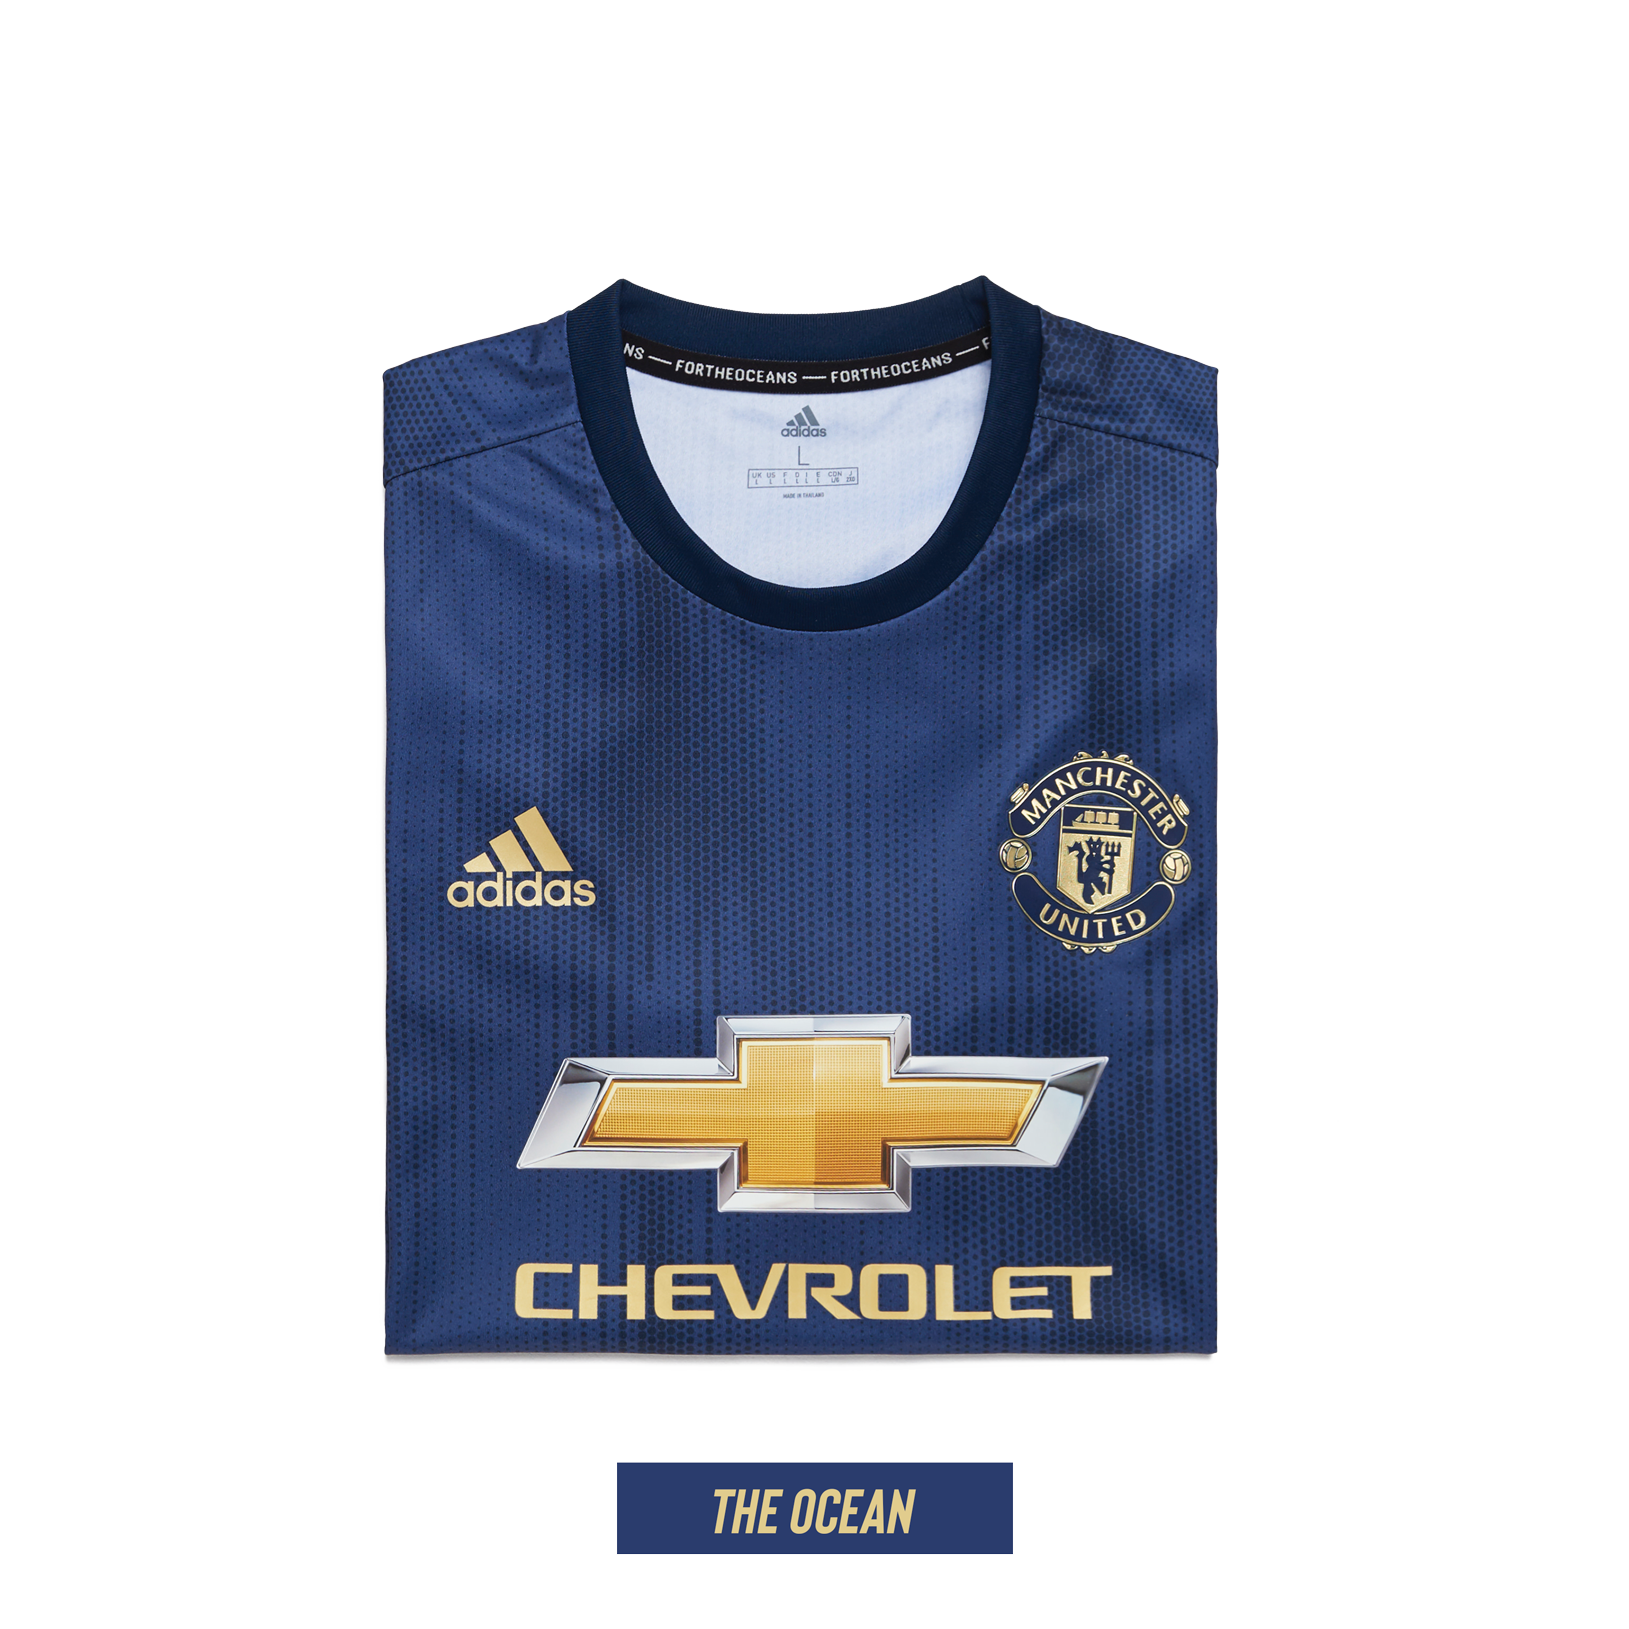 Glory-by-Nick-Pecori-Photographer-Manchester-United-Adidas-Kith-Parley-W.png